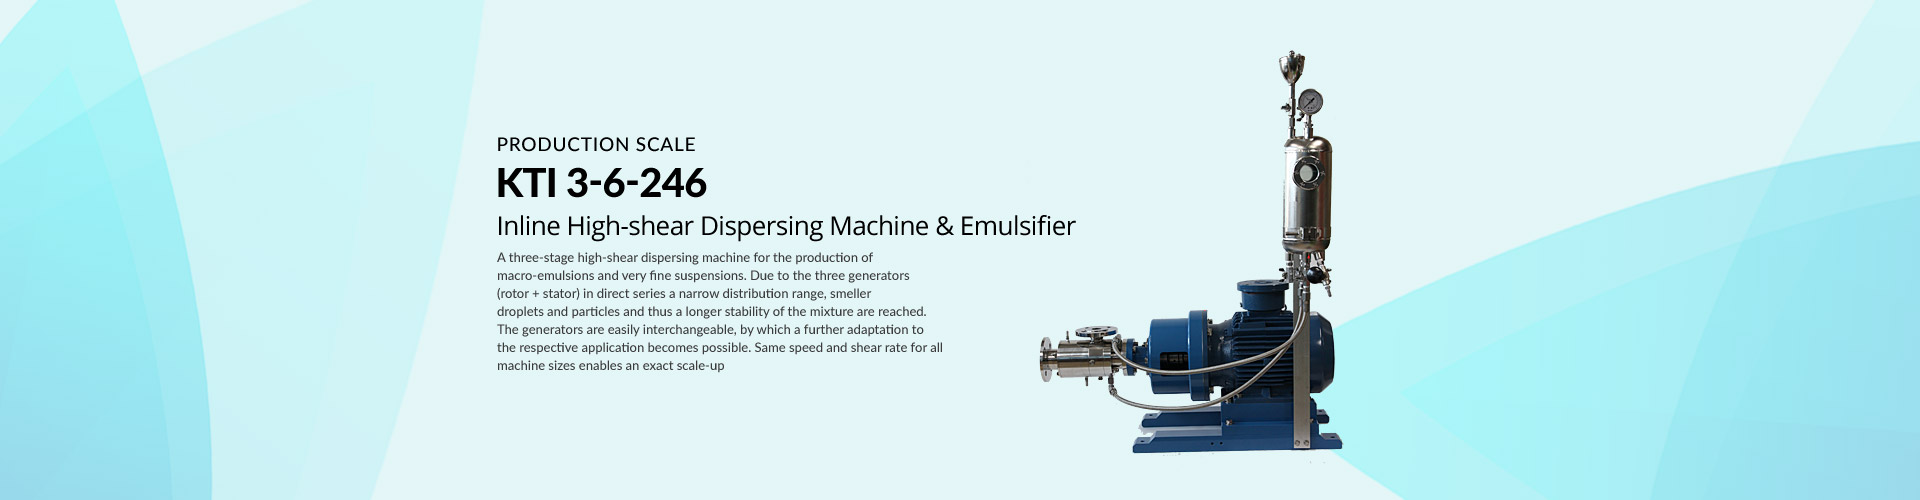 KTI 3-6-246 inline High-shear Dispersing Machine & Emulsifer